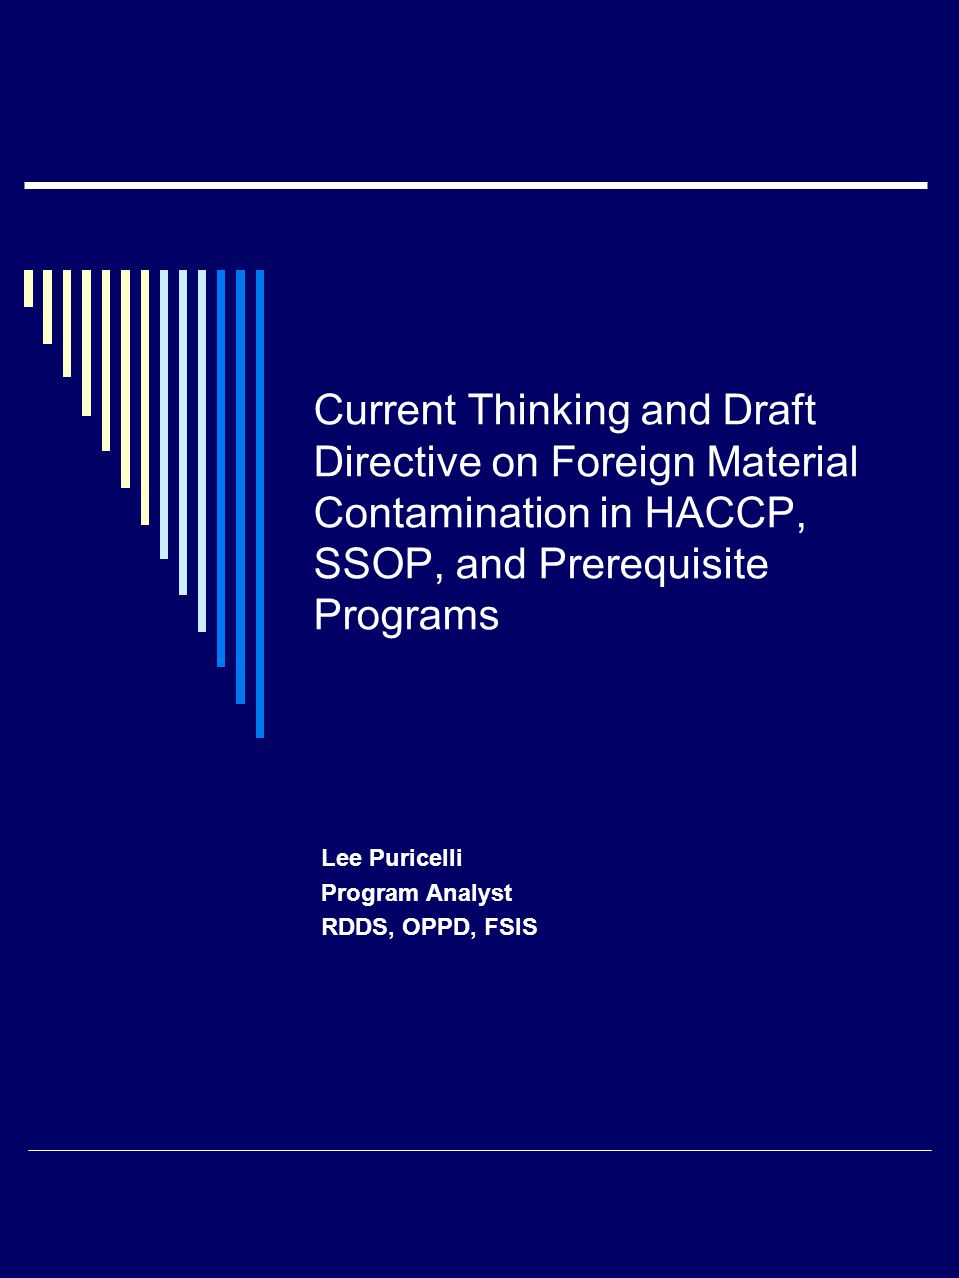 Current Thinking and Draft Directive on Foreign Material Contamination in HACCP, SSOP, and Prerequisite Programs Lee Puricelli Program Analyst RDDS, OPPD, FSIS